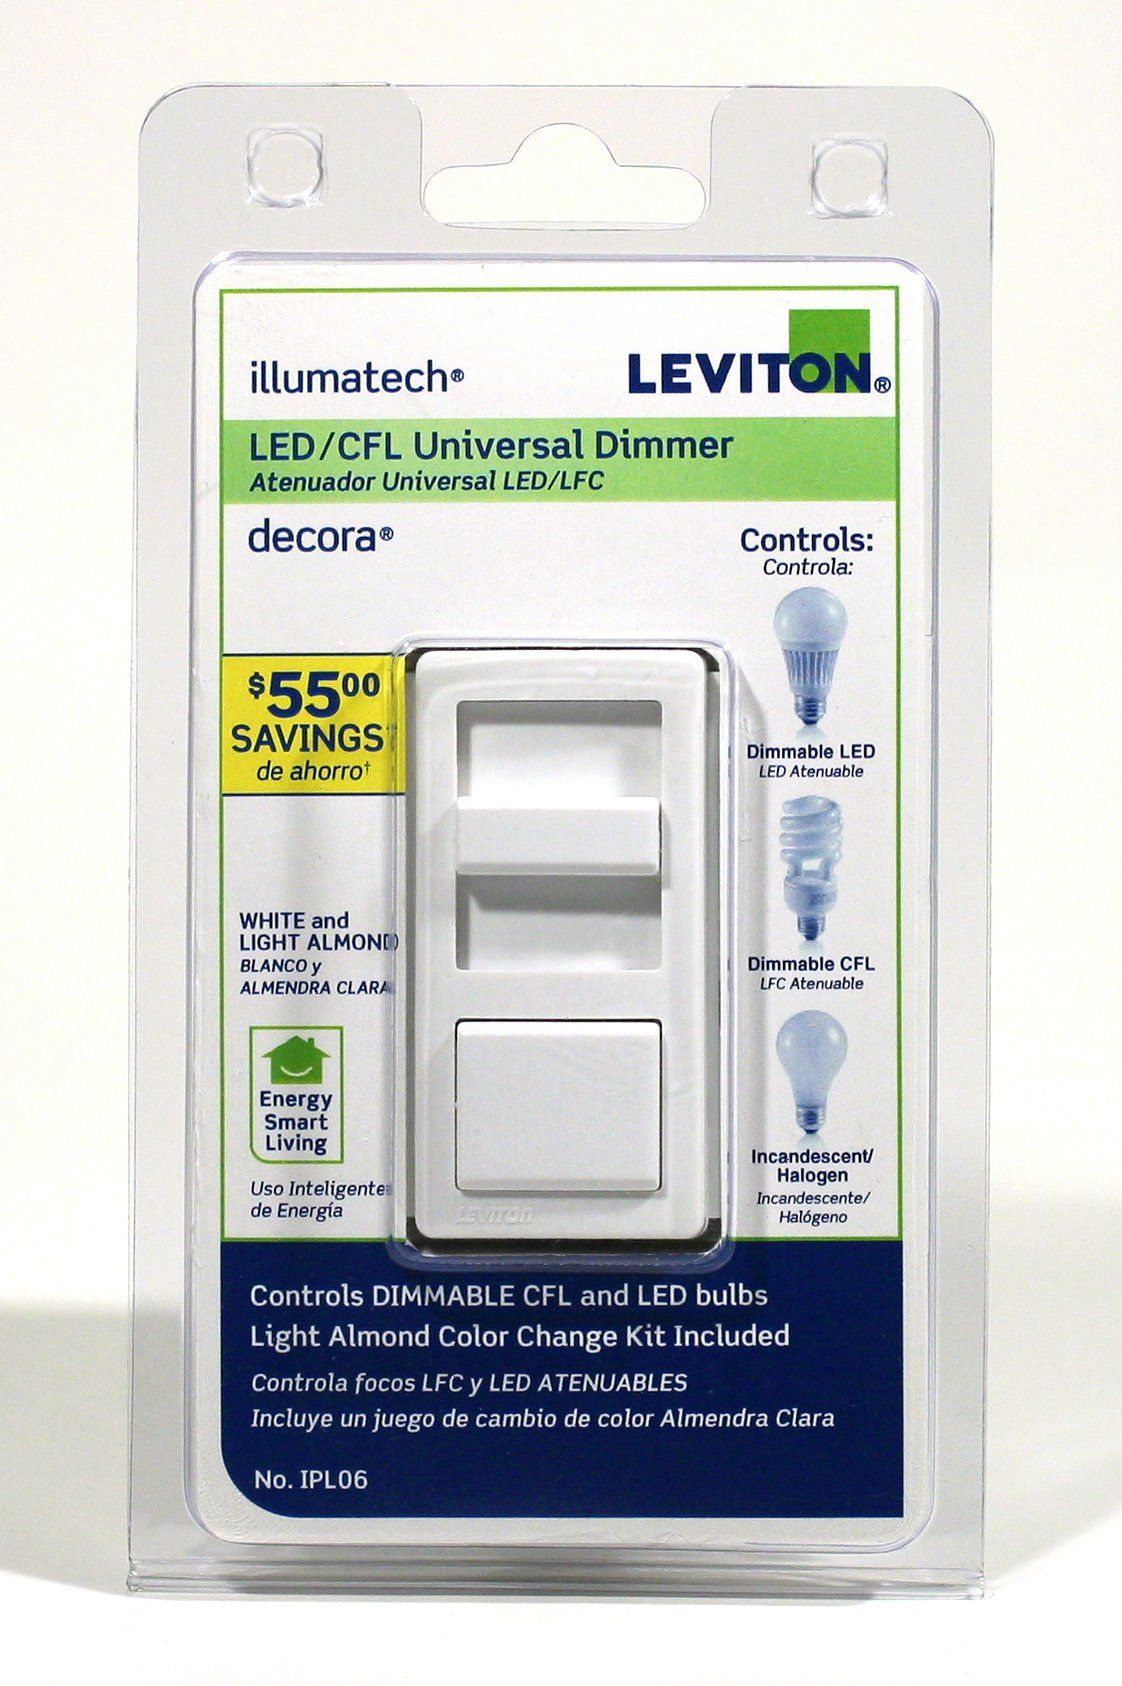 Leviton IPL0610Z IllumaTech Universal 150Watt LED and CFL